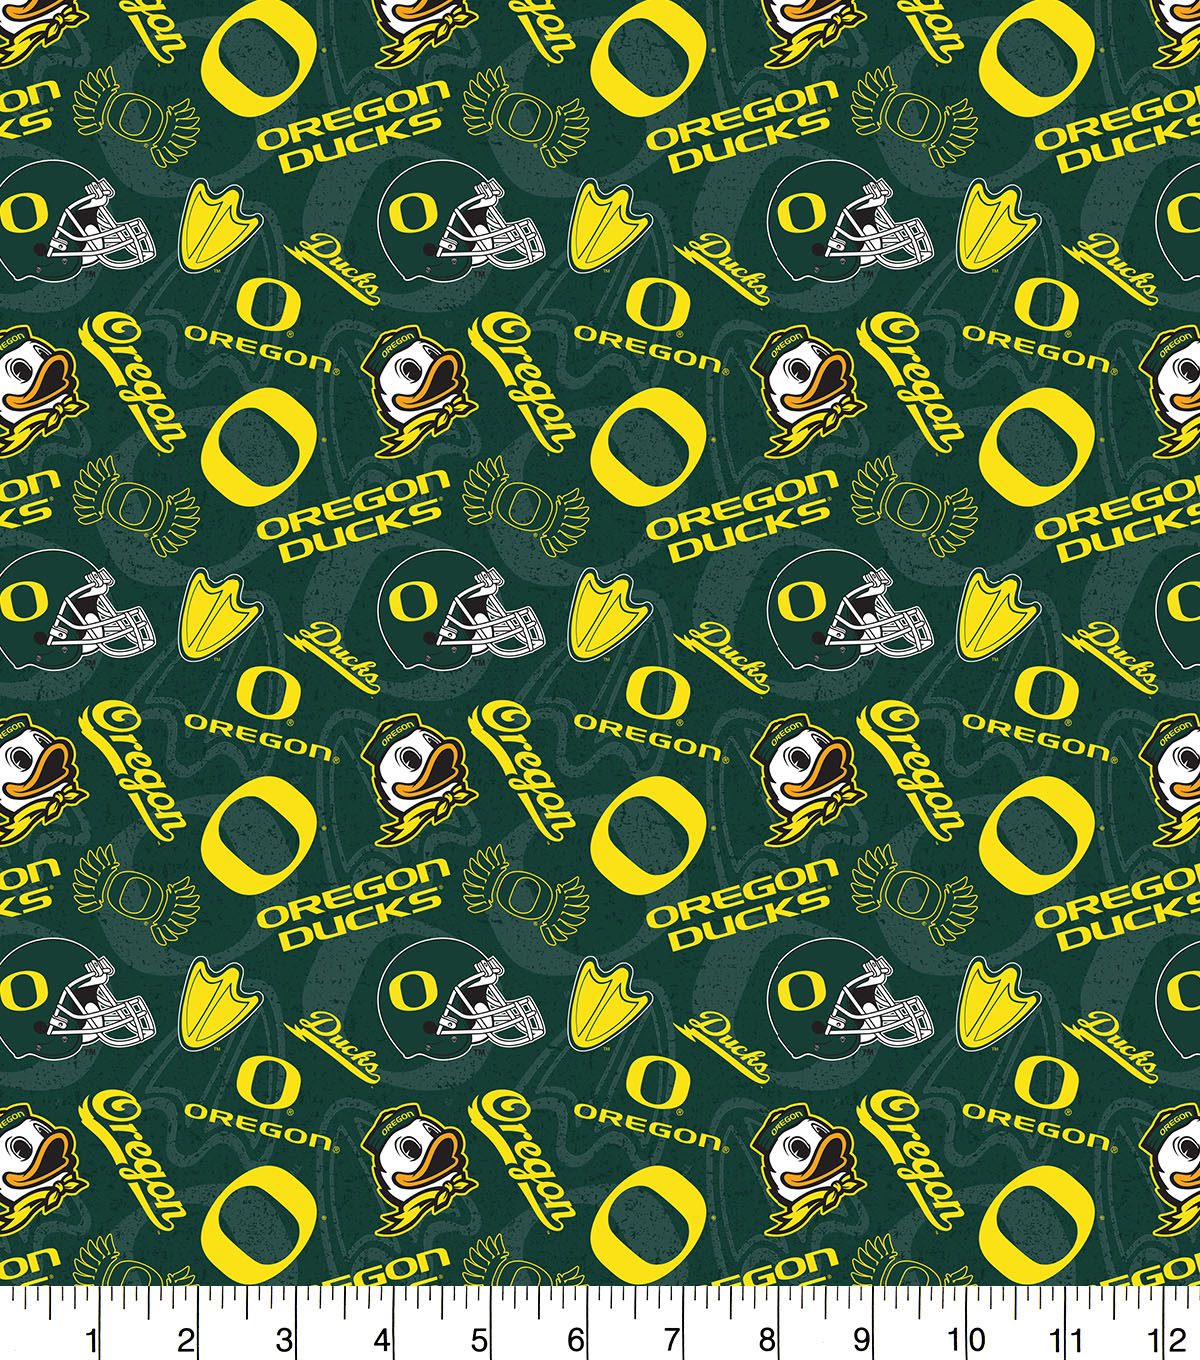 University of Oregon Ducks Cotton Fabric-Tone on Tone